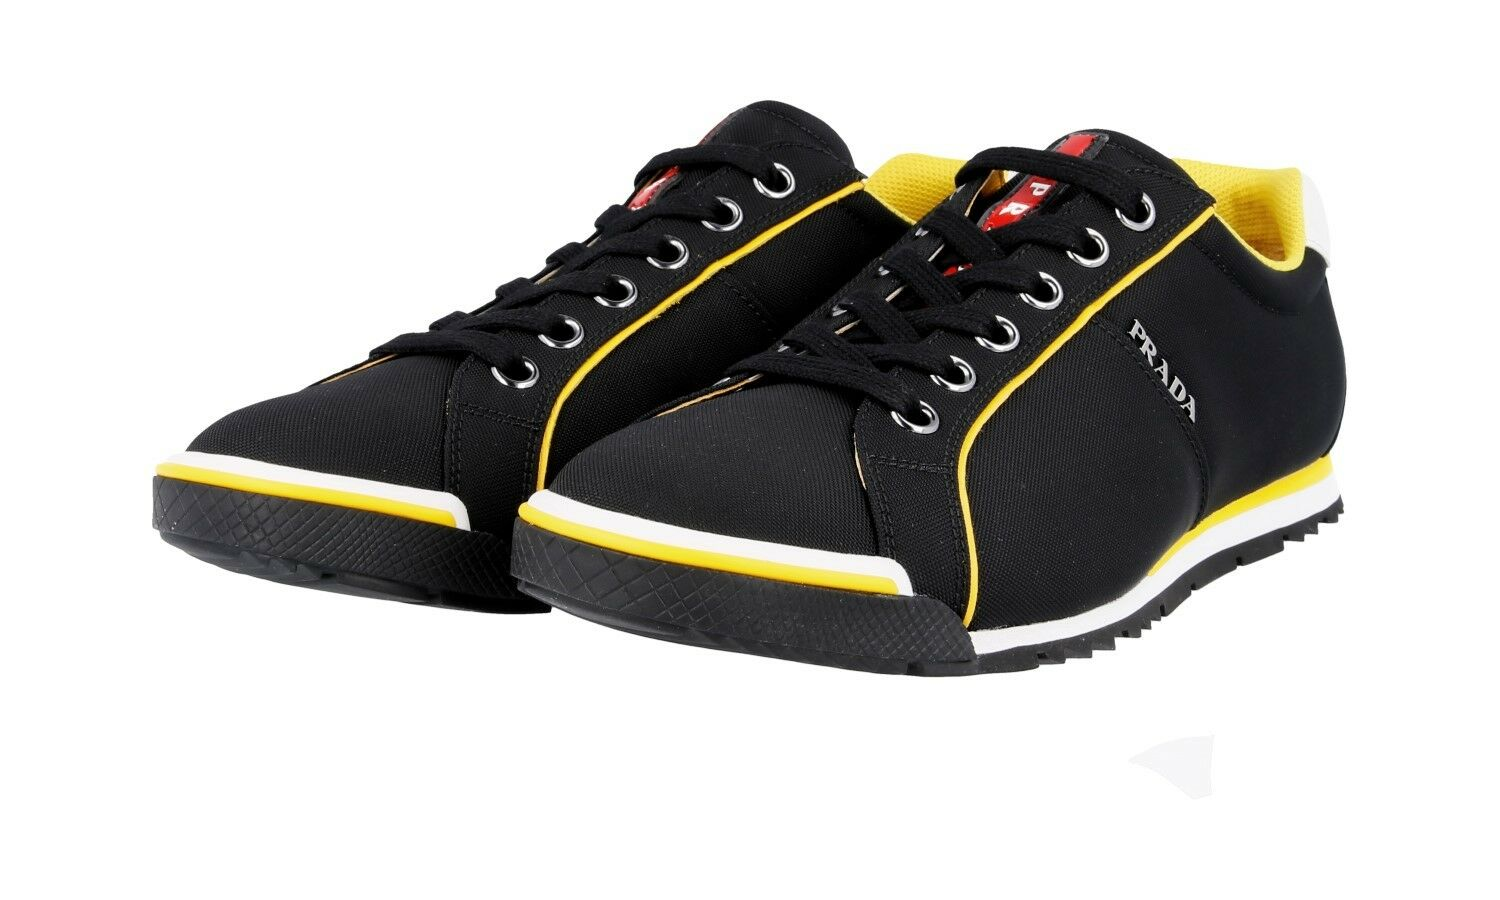 AUTH LUXURY PRADA SNEAKERS SHOES 4E2719 BLACK YELLOW NEW 9,5 43,5 44